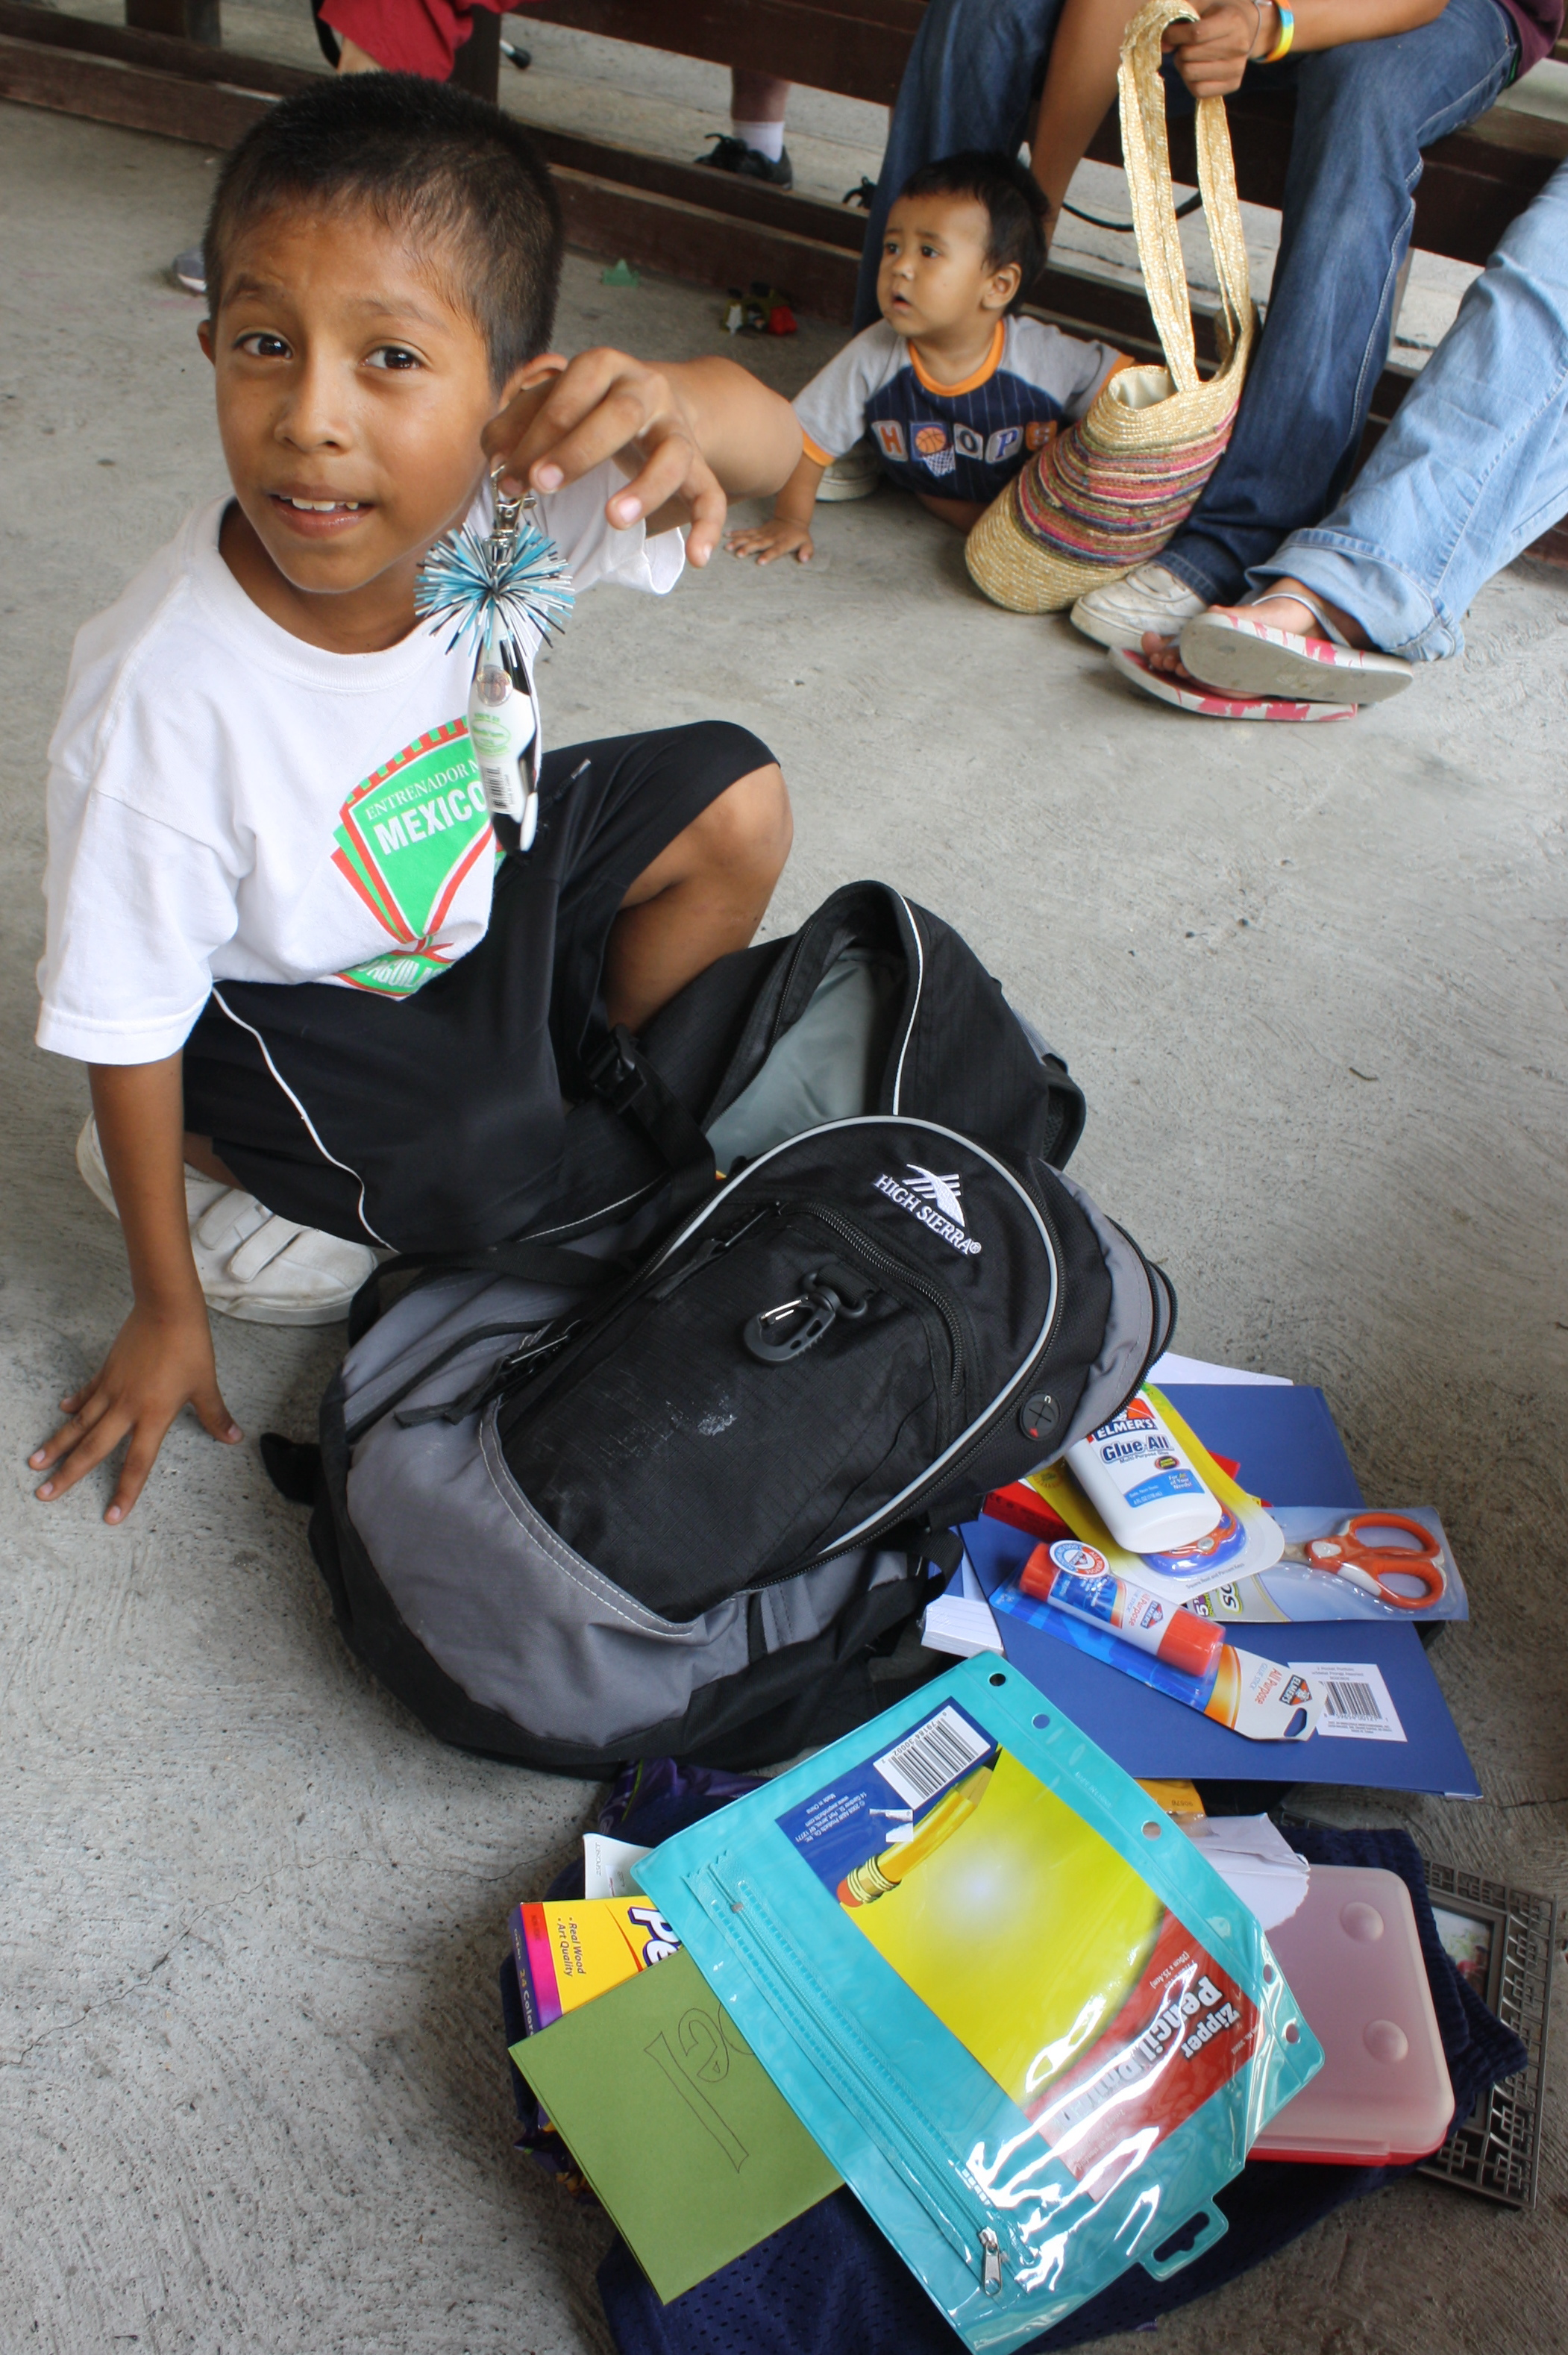 Joel was excited to discover that his backpack was filled with school supplies that he needed